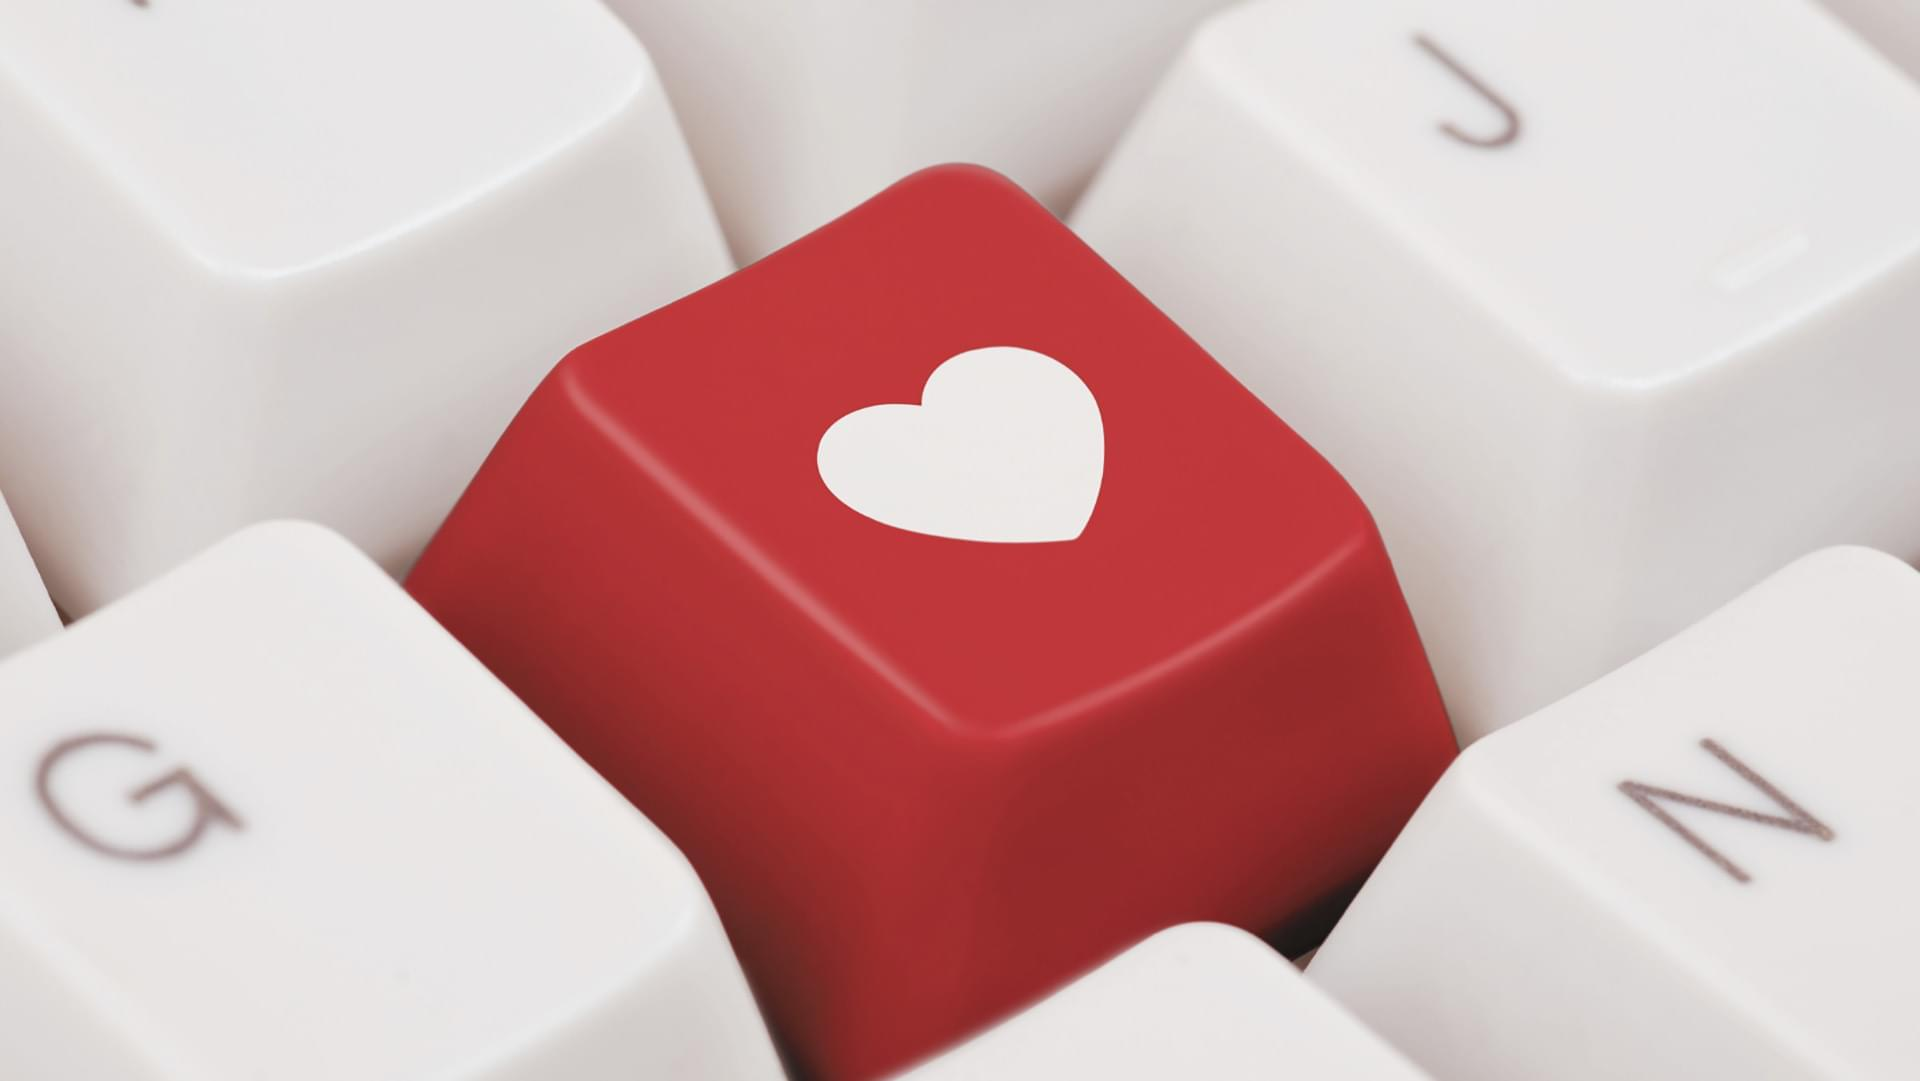 chat online dating tips How dating sites and scammers use fake profiles they convince members to chat with them outside of the dating service site in 'spot the fake profile' tips.